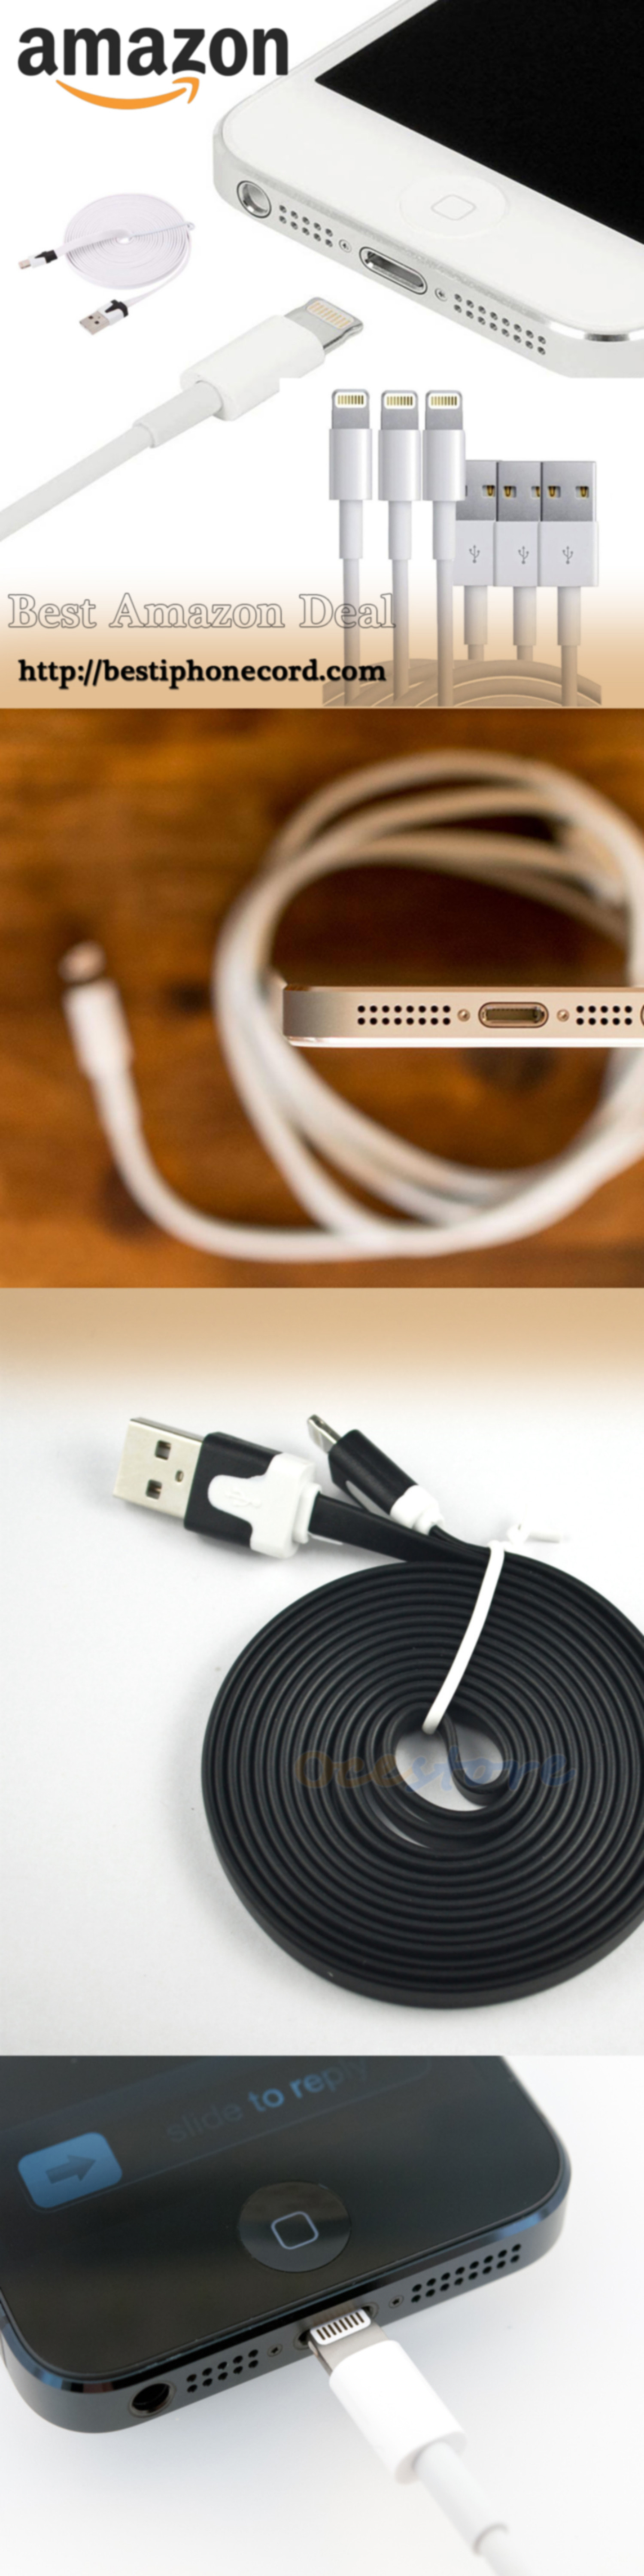 Apple iPhone cable long Infographic